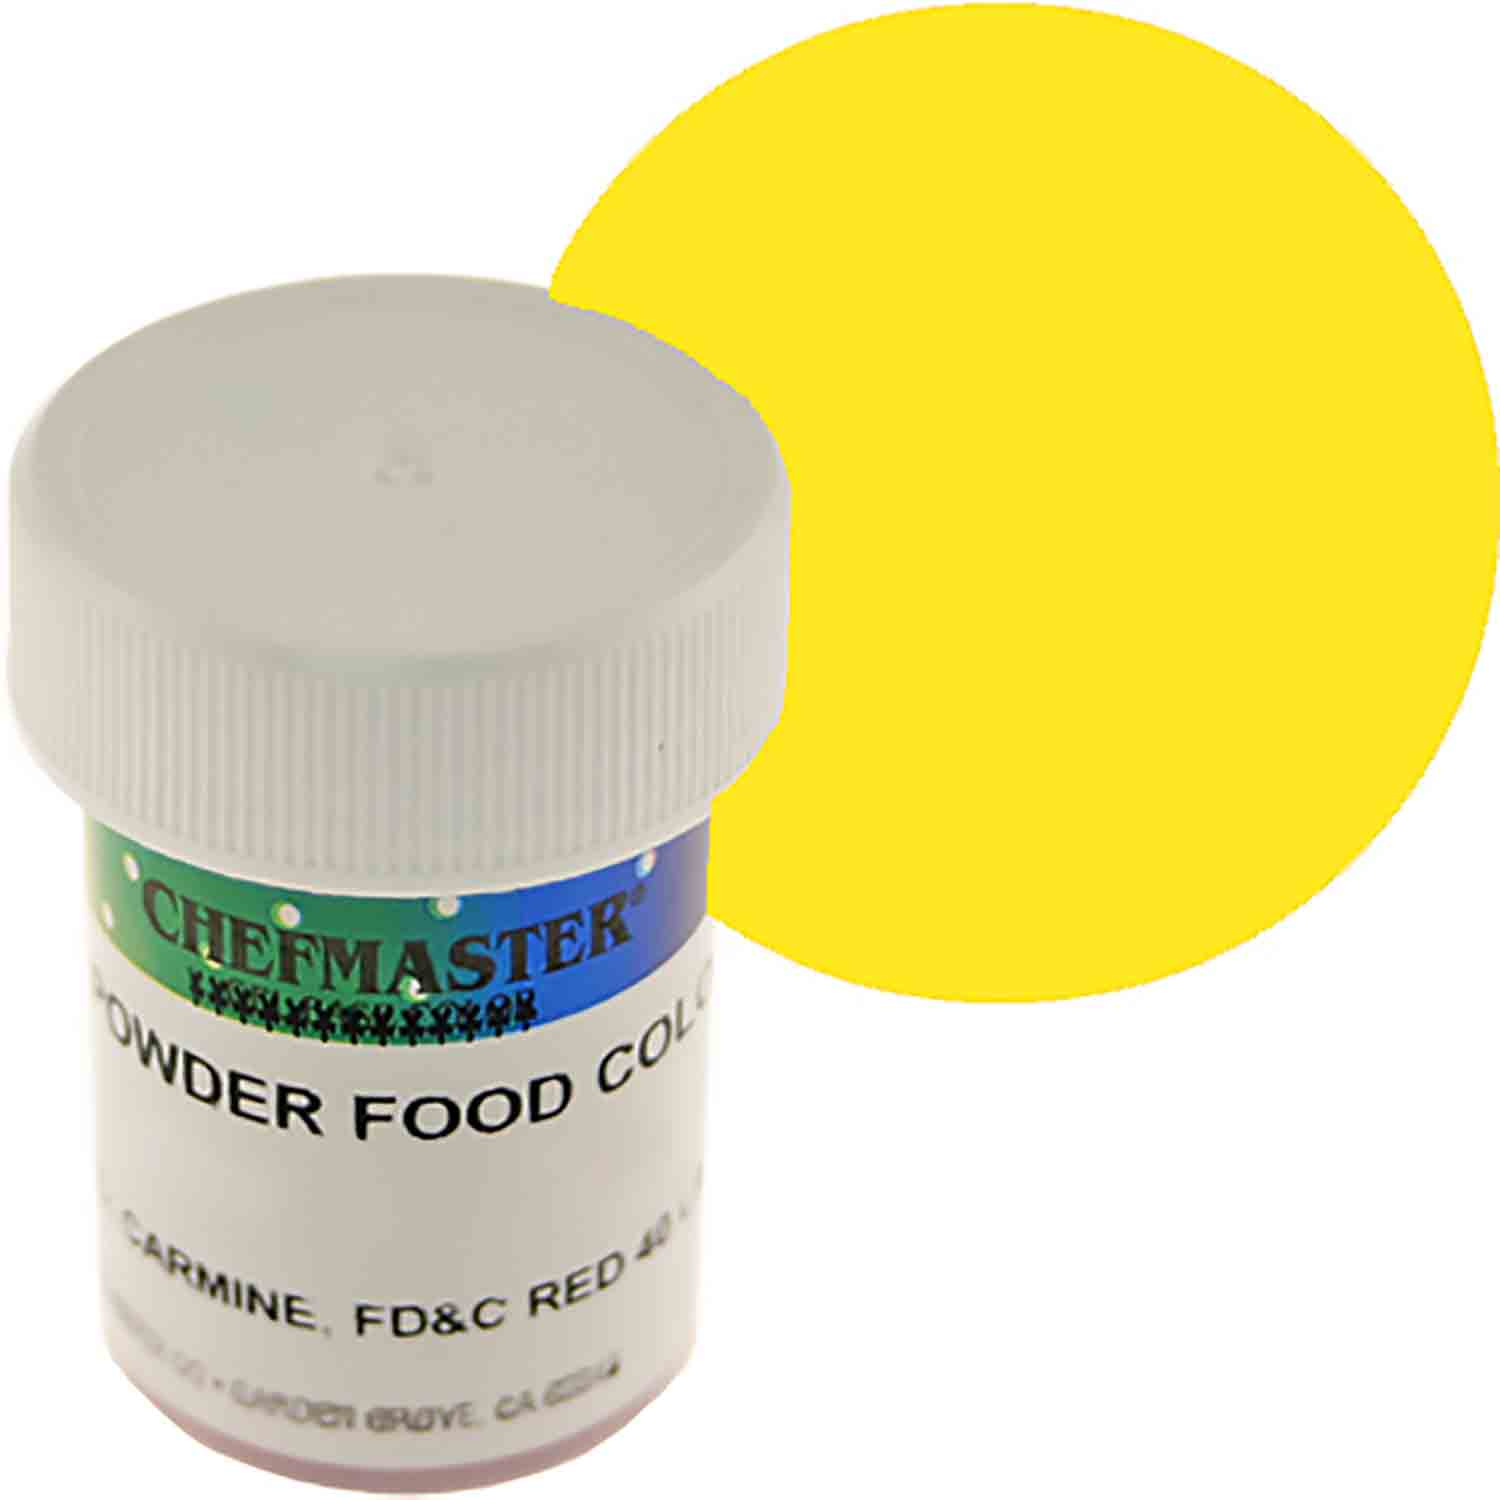 Yellow Chefmaster Powdered Food Color